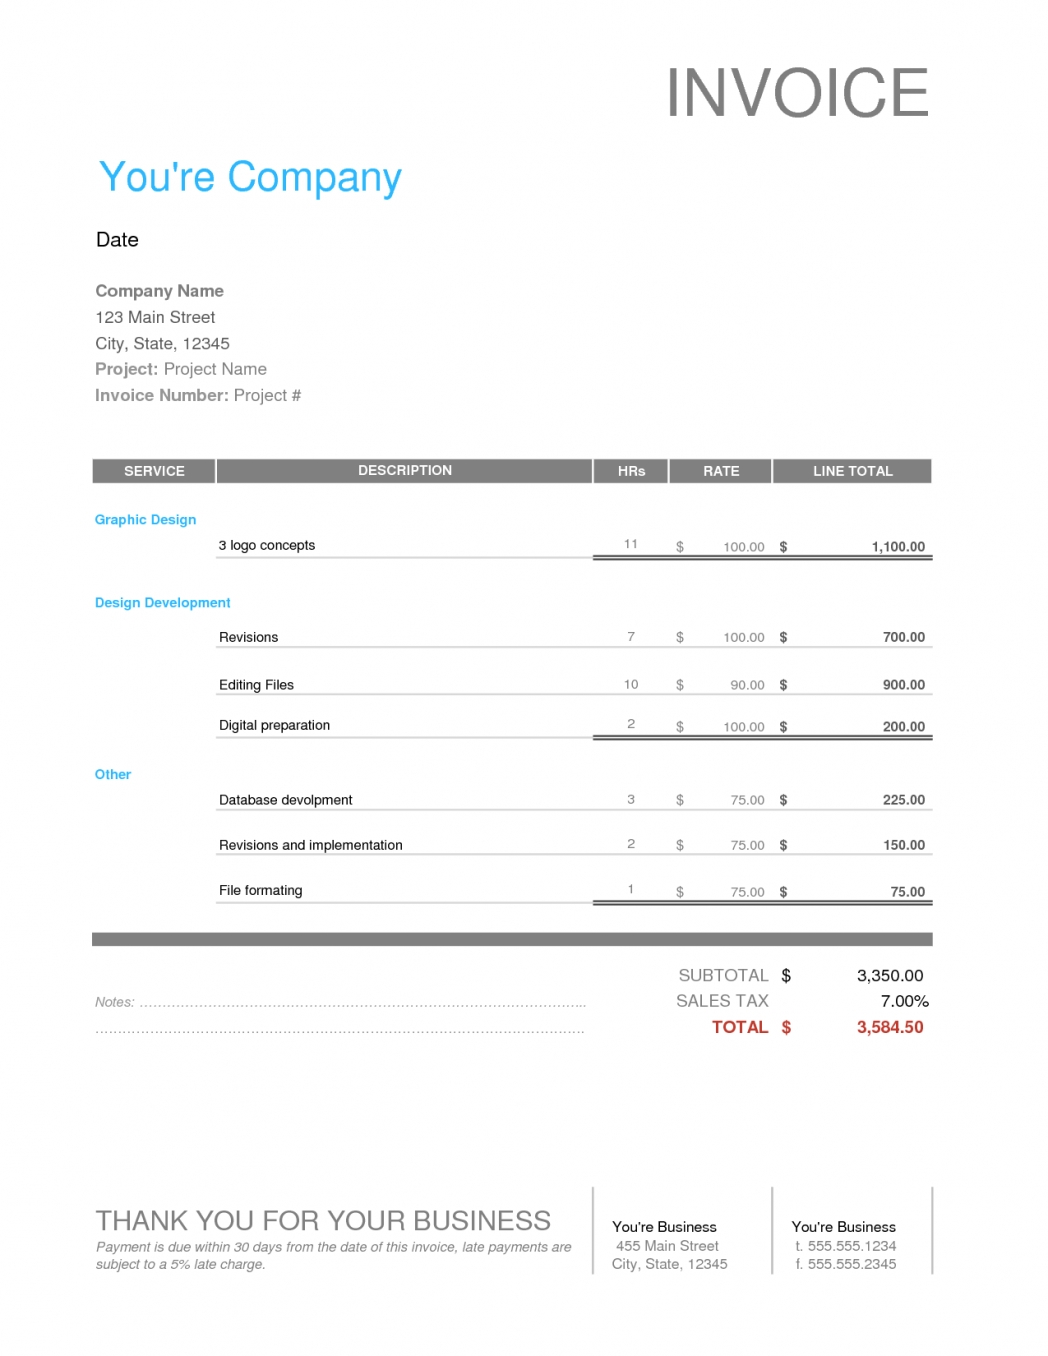 invoice for website design 1000 ideas about invoice template on pinterest design pdf 1048 X 1356